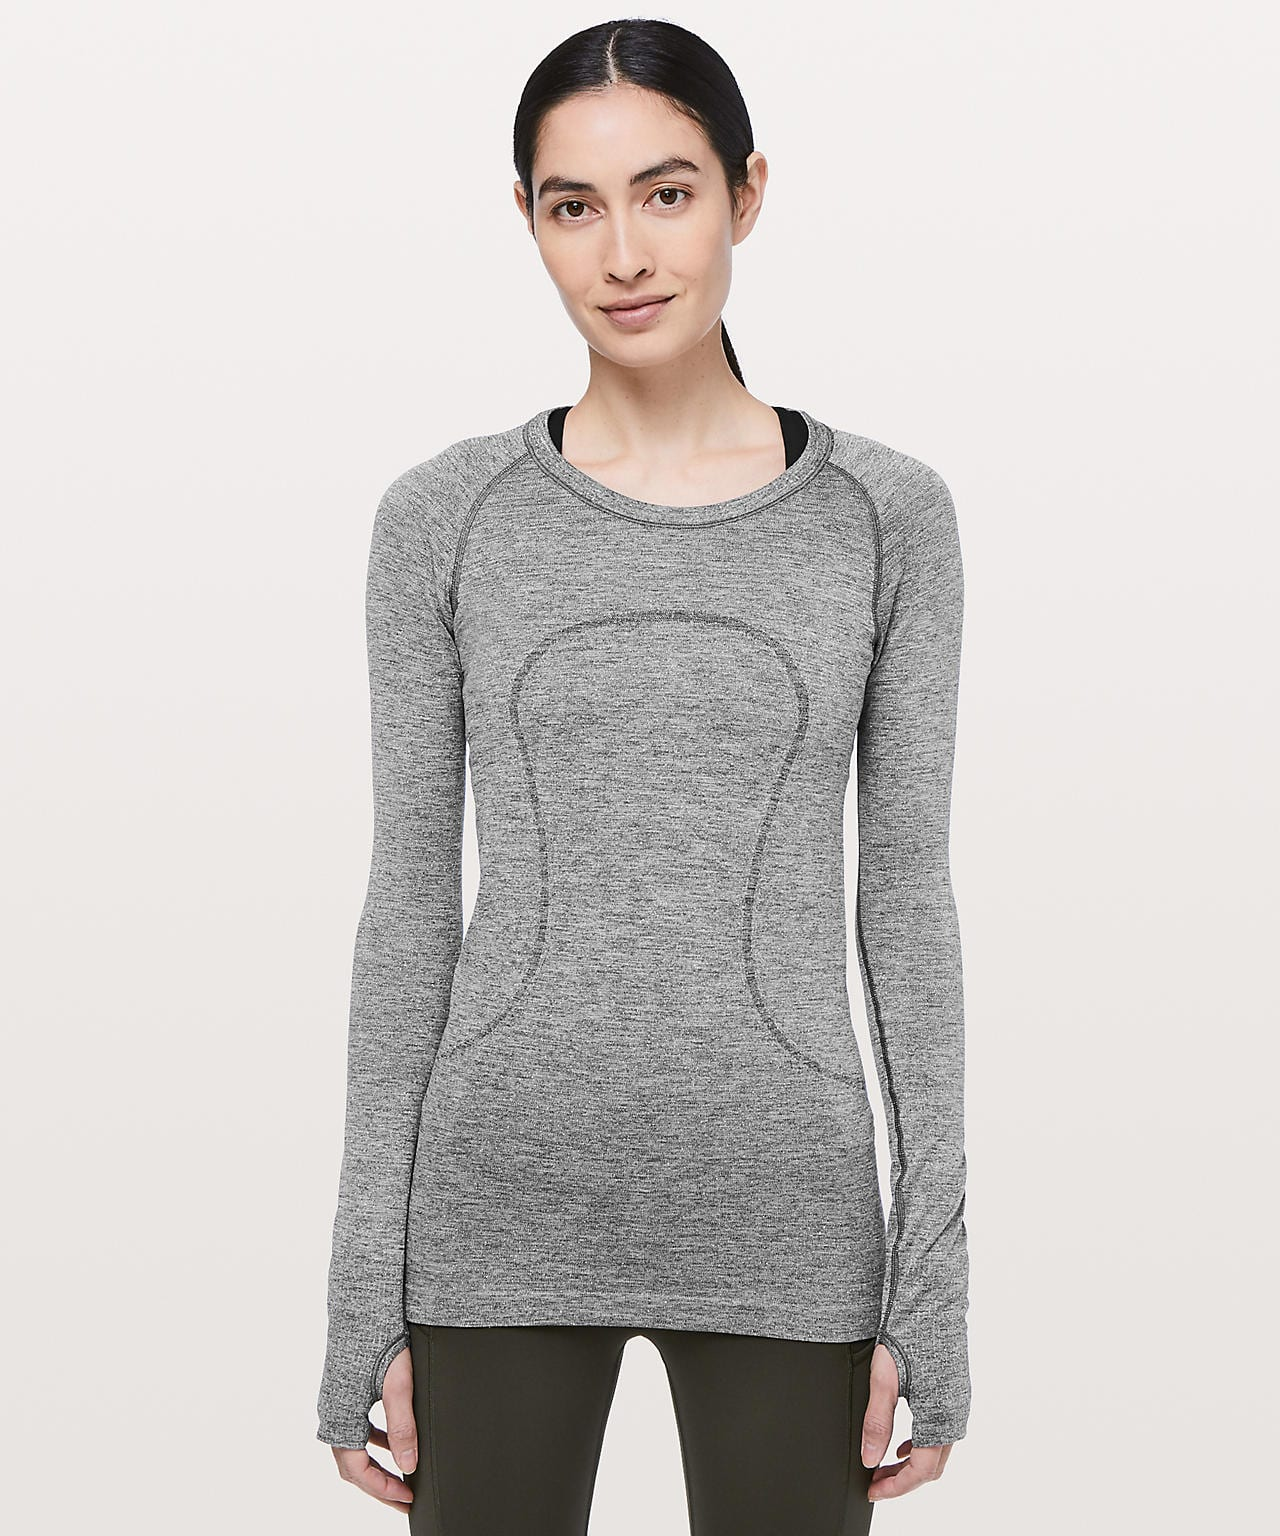 Swiftly Tech Long Sleeve Crew Sparkle